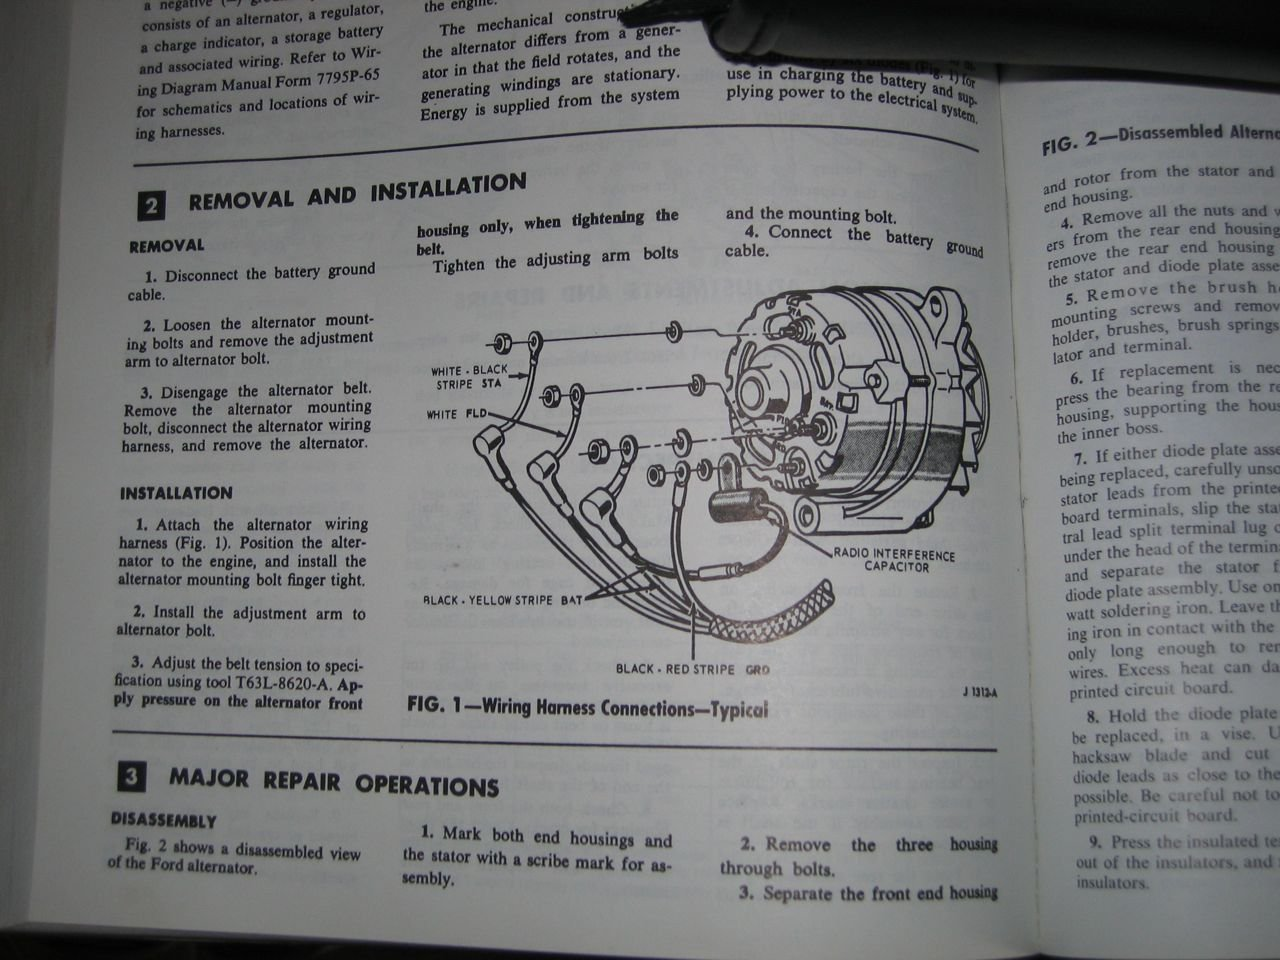 93328d1268767403 1966 mustang alternator wiring img_0749 1966 mustang alternator wiring ford mustang forum 1965 ford alternator wiring diagram at eliteediting.co